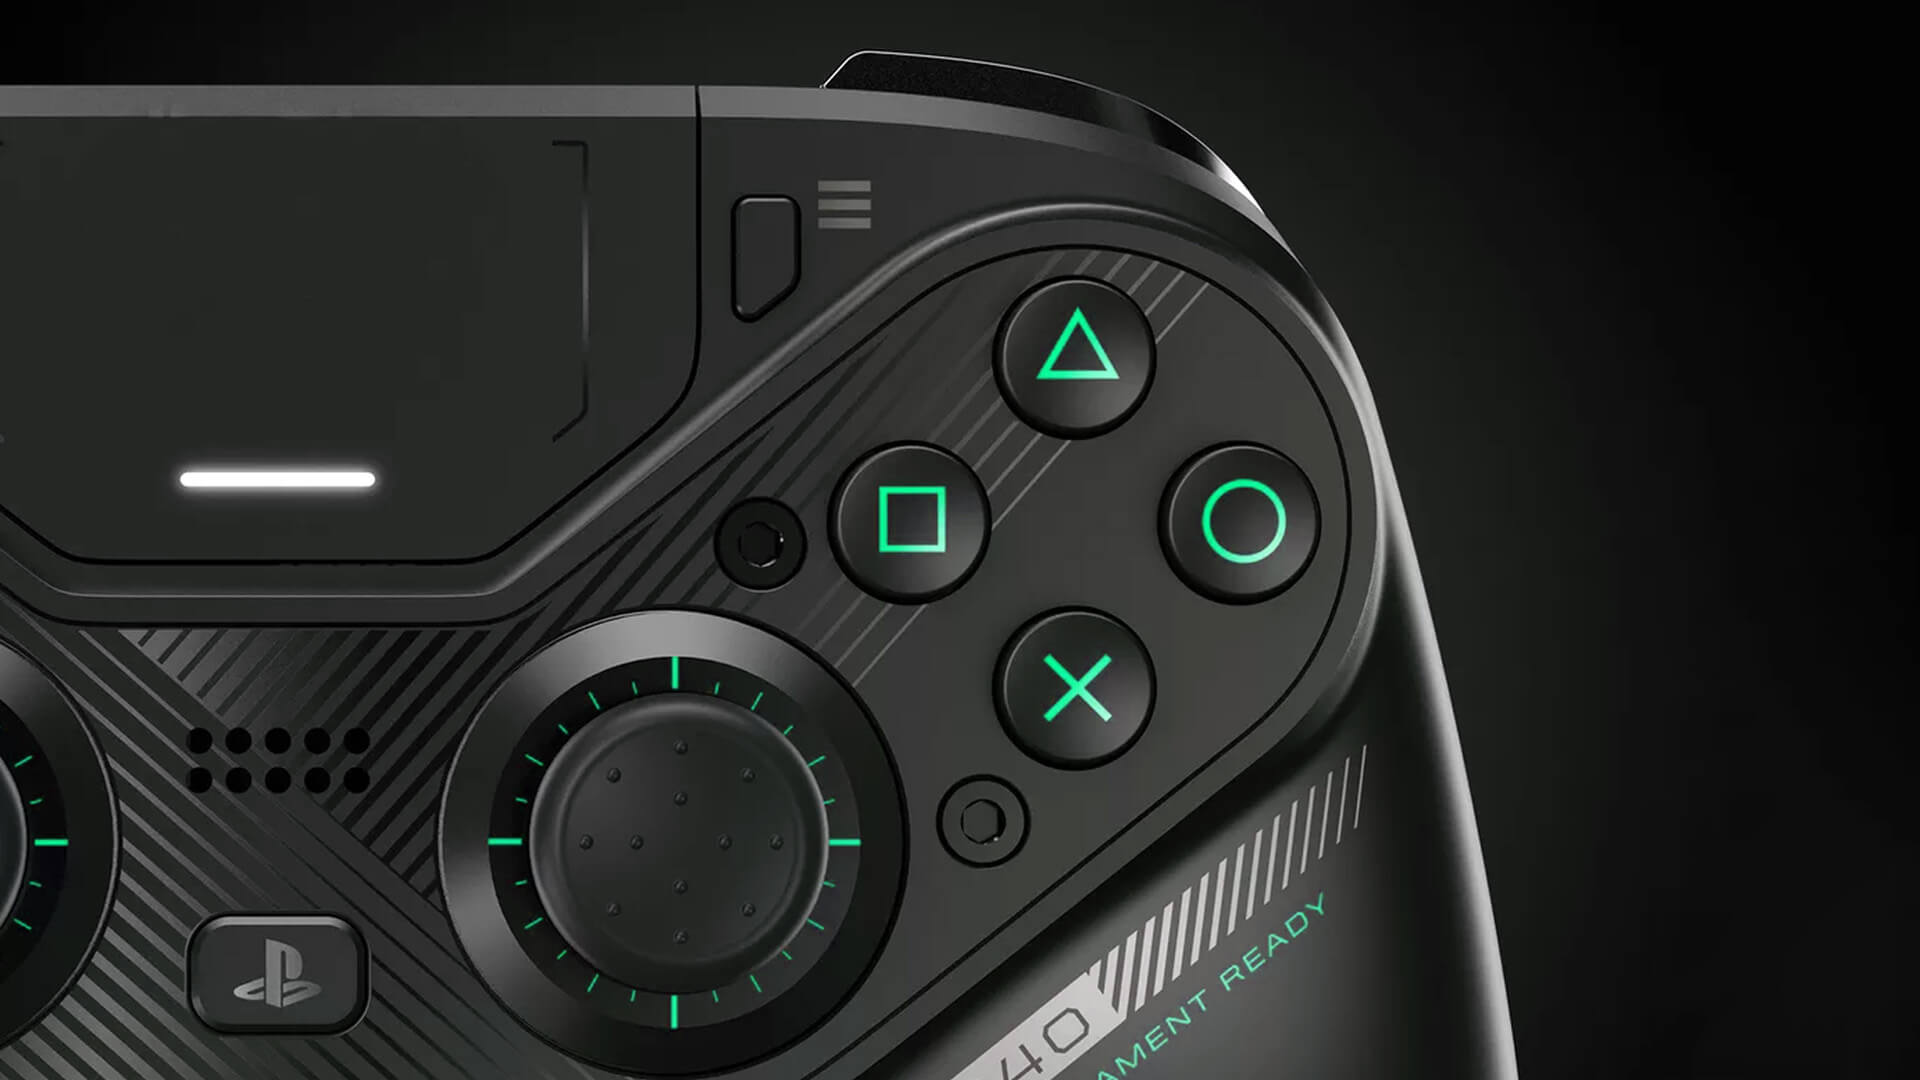 PS4 controller with back buttons